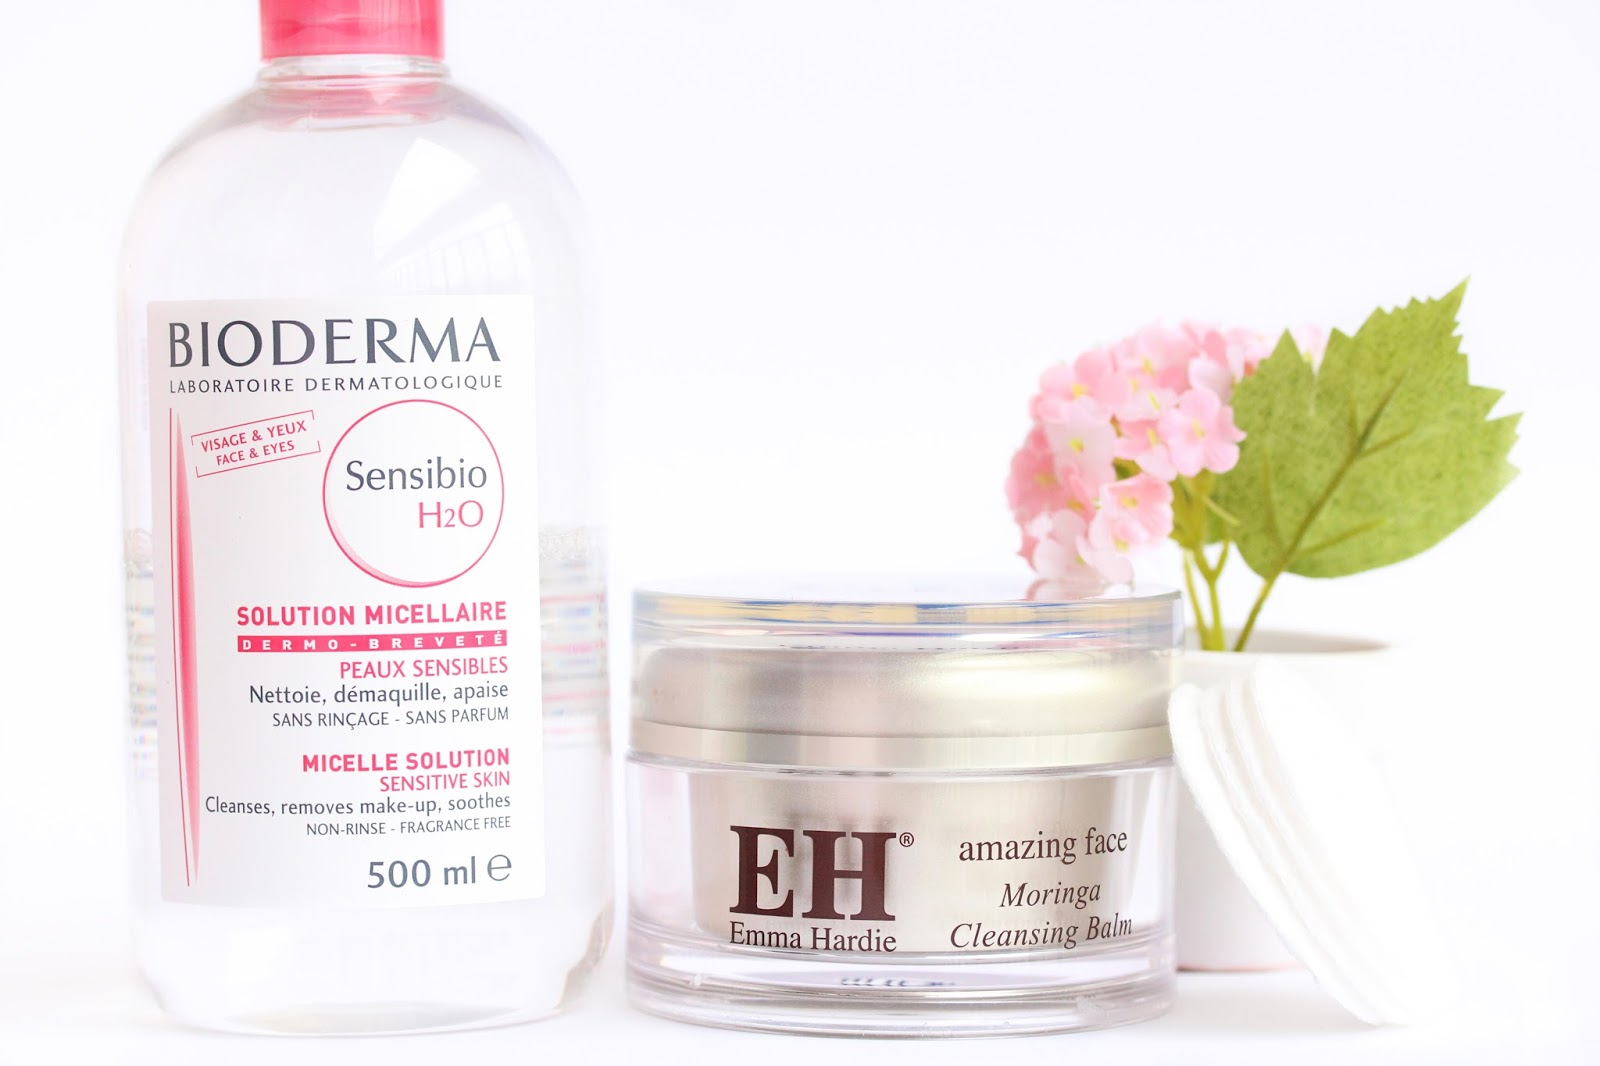 emma hardie cleansing balm and bioderma sensibio